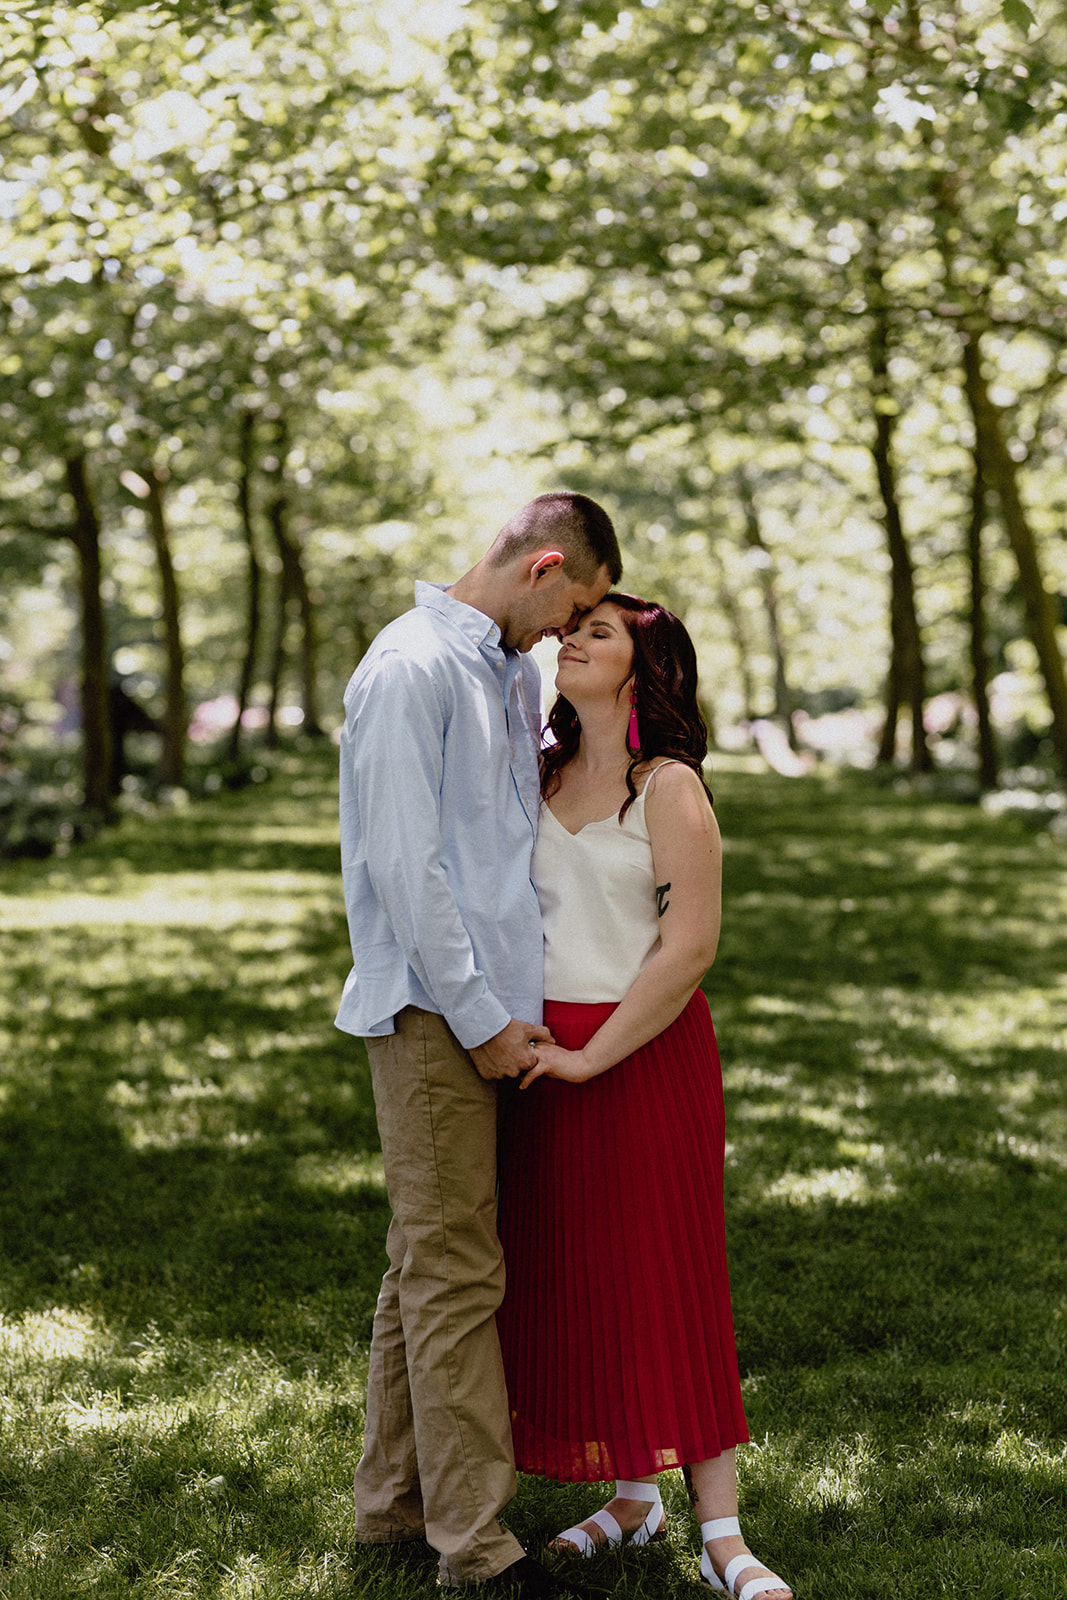 stan hywet engagement session - lana + zach 44